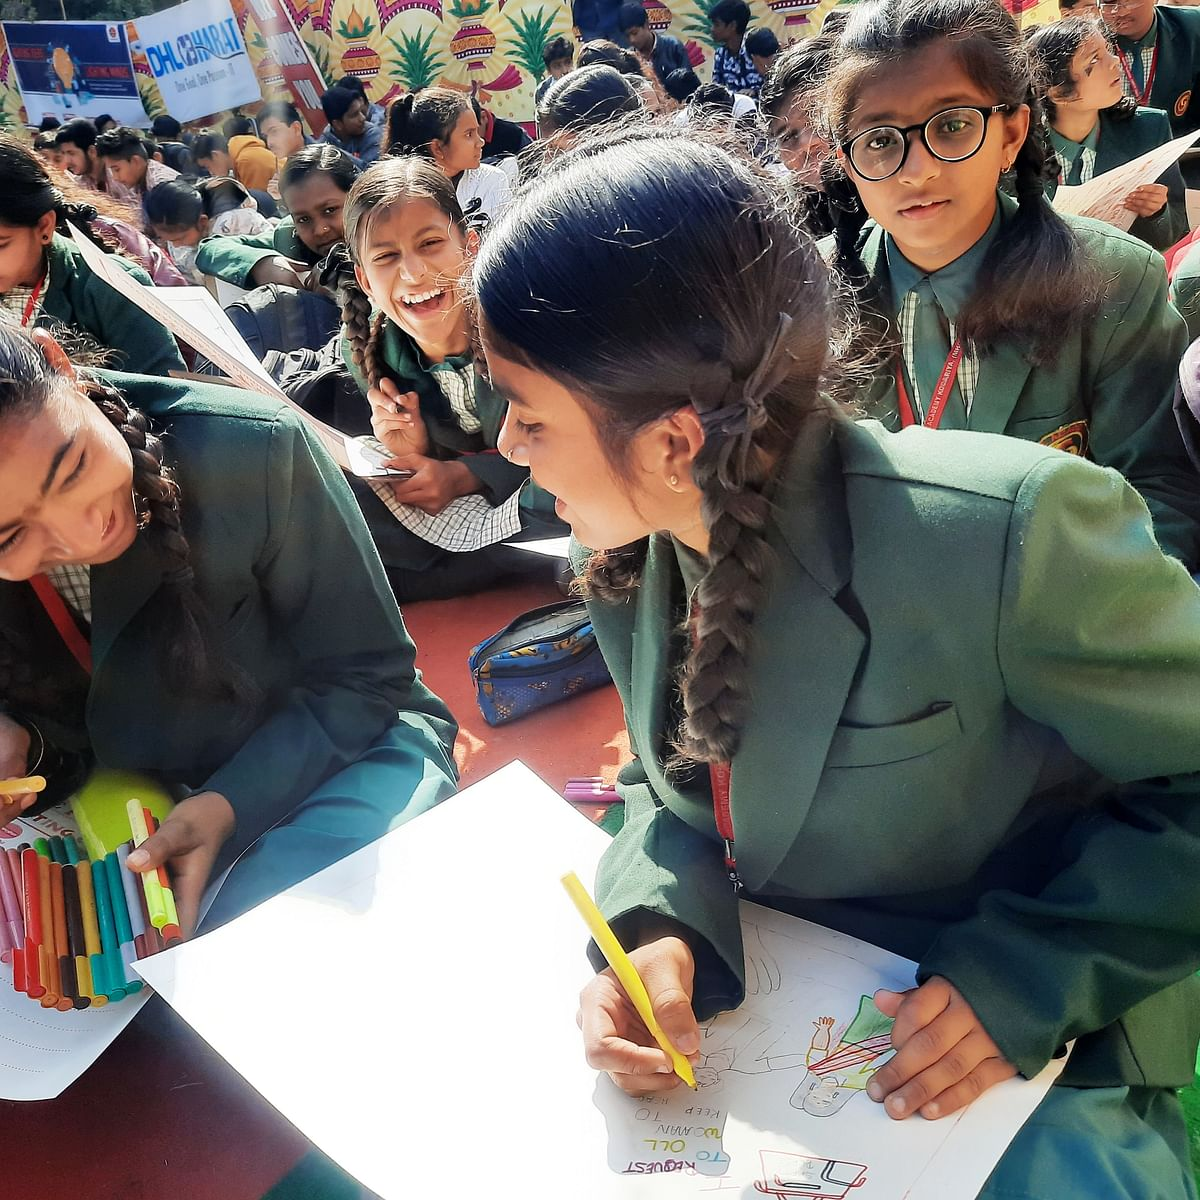 Mumbai Event: Aditya Birla trust and John Hopkins CTY collaborate to support young learners in India